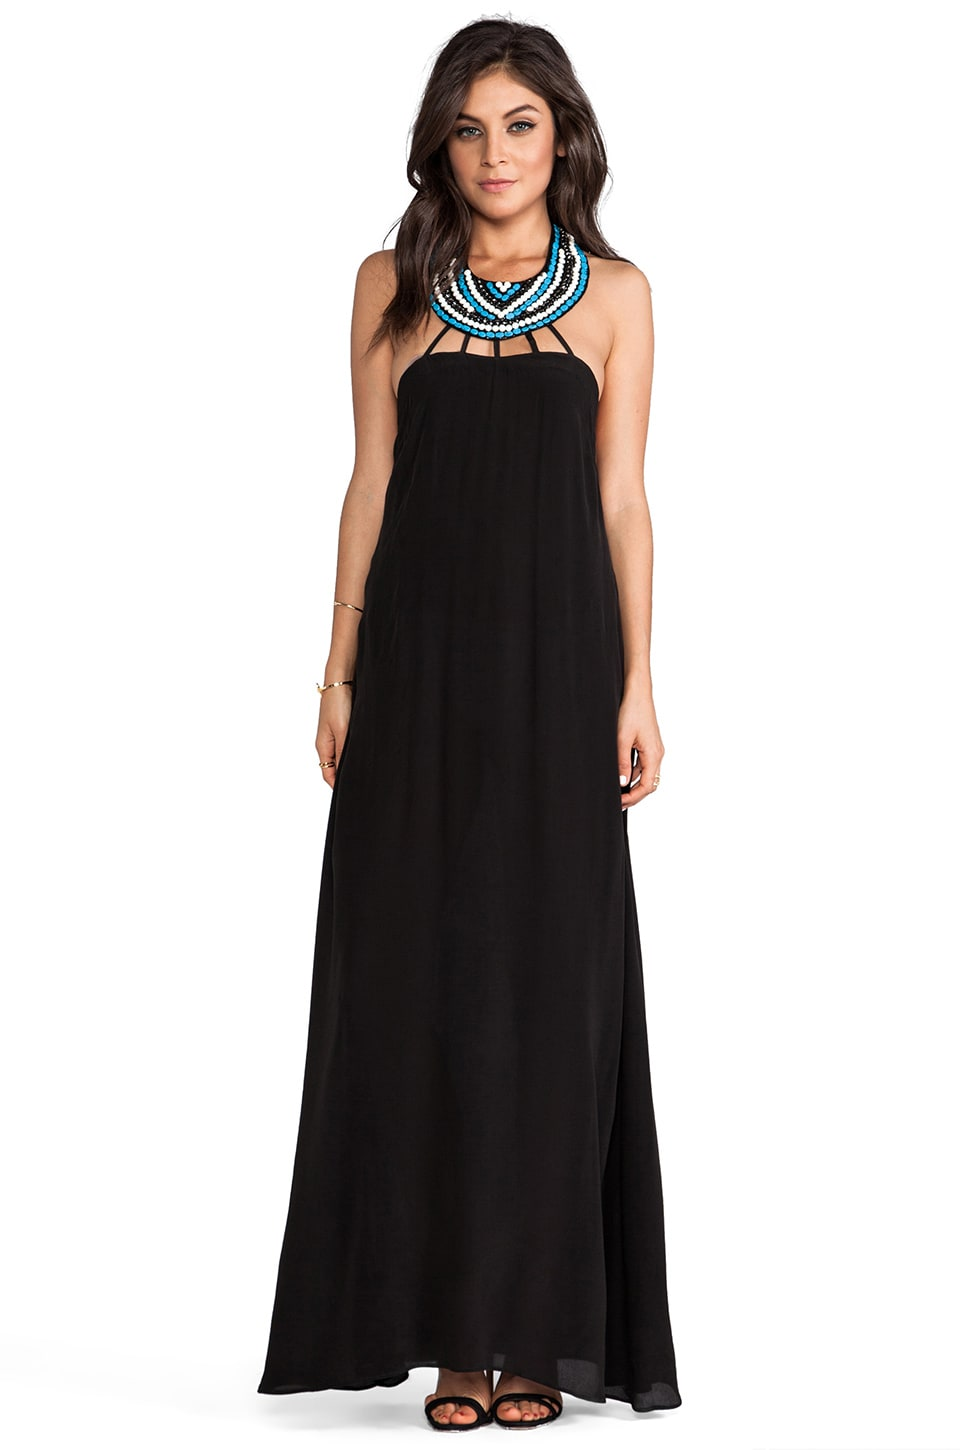 Karina Grimaldi Irenah Beaded Maxi Dress in Black